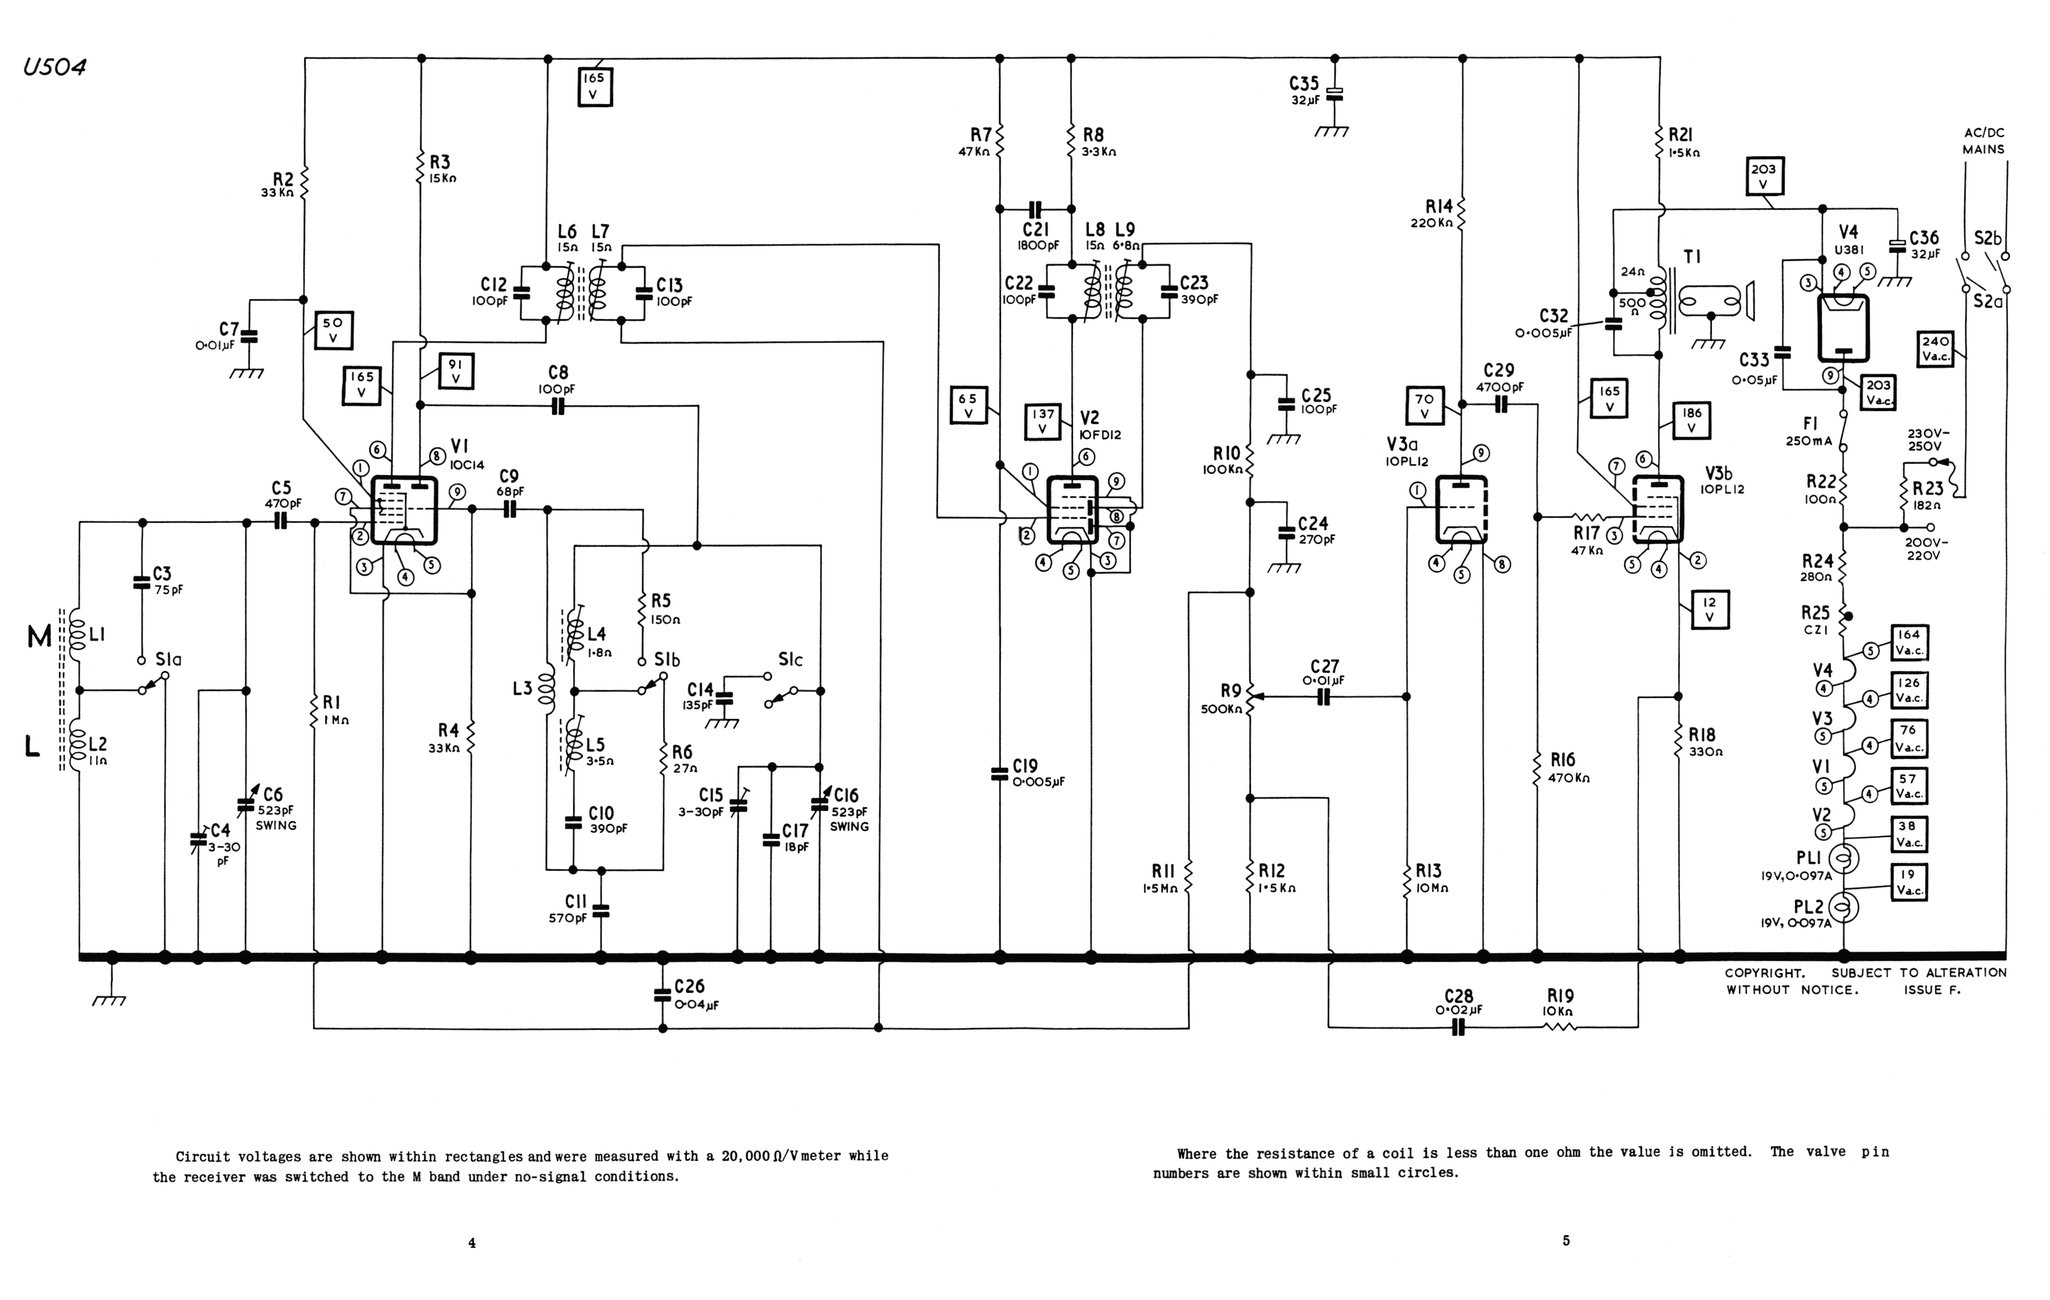 Schemview in addition GR81Schm moreover 2 Way Speaker Box Design further Panasonic 3 band radio cassette re also Elac miraphon 50h50. on schematic of a radio